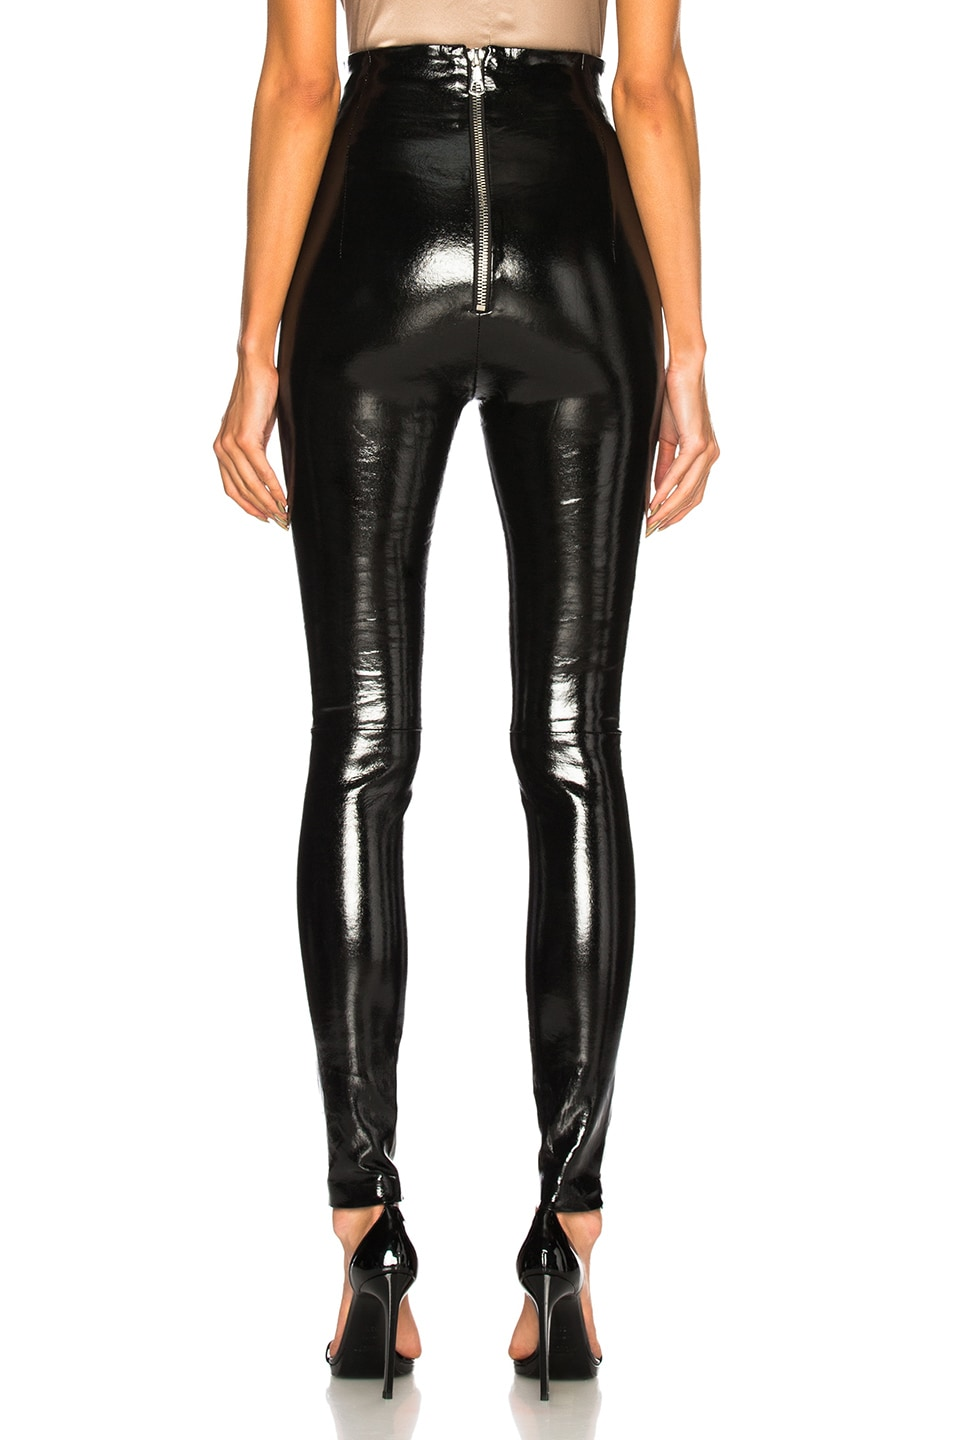 Image 3 of SABLYN Jessica Patent High Waisted Leggings in Black